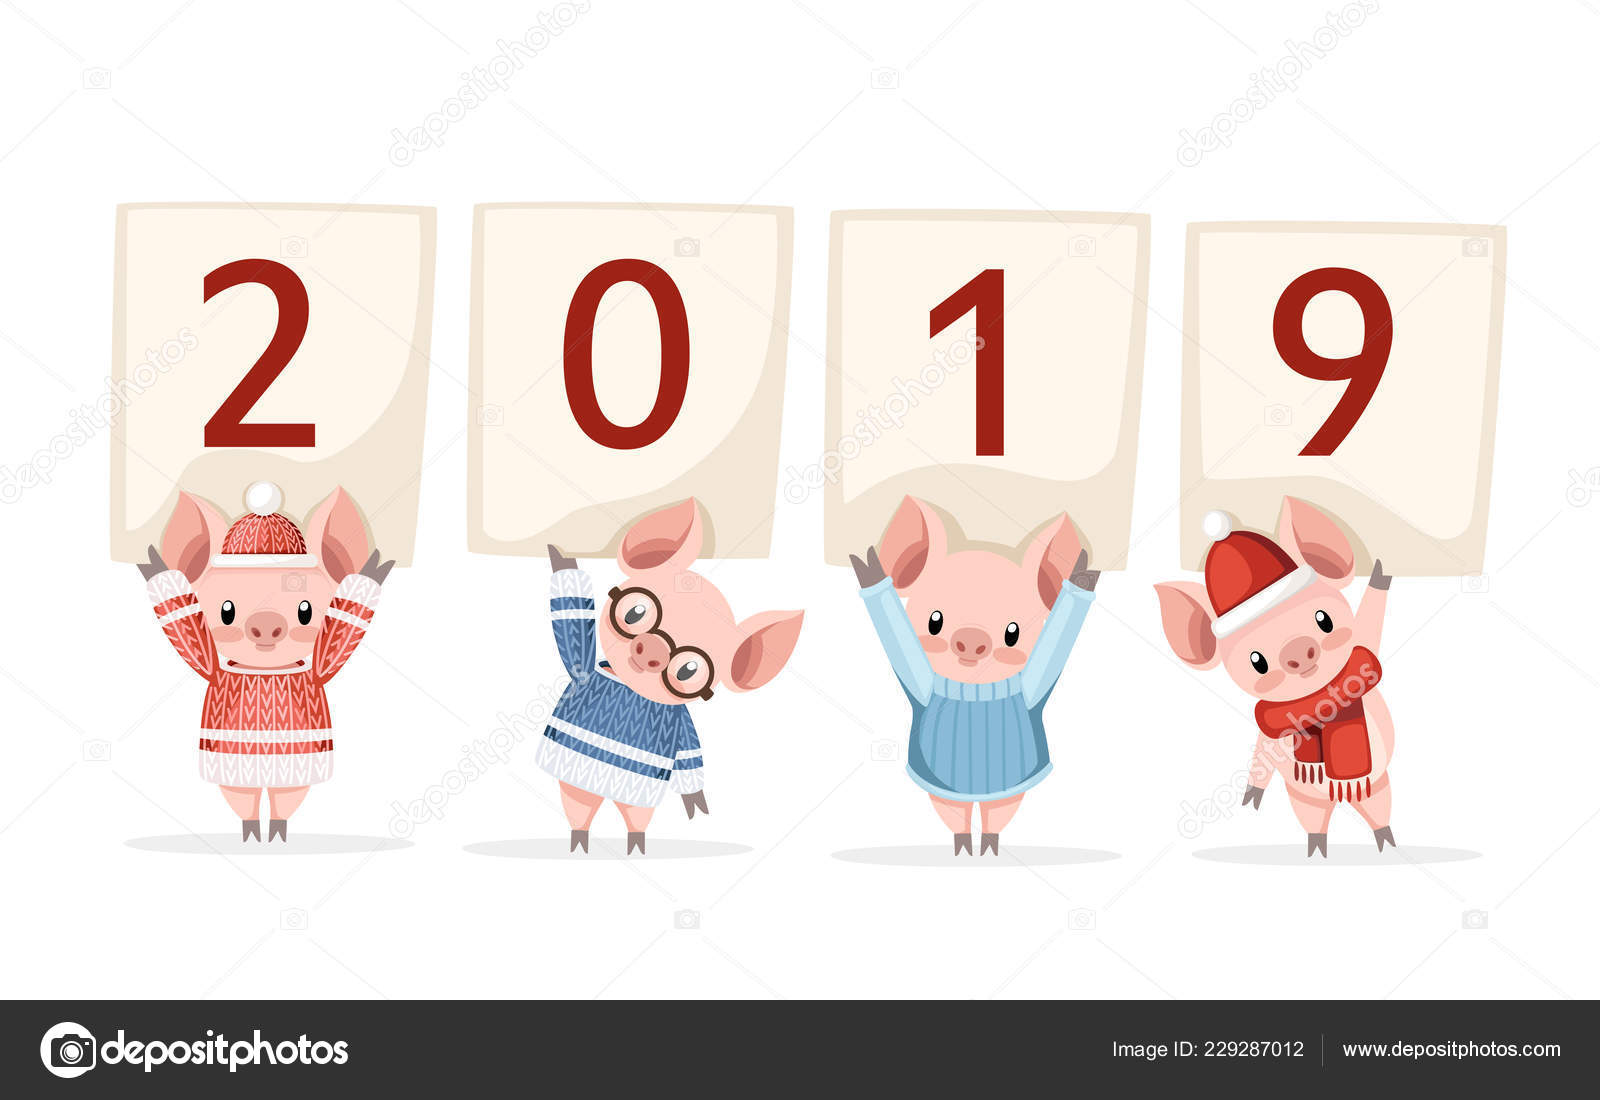 56d6dbc07d79 Four Cute Pigs Warm Knitted Winter Clothes Holding 2019 Cartoon — Stock  Vector